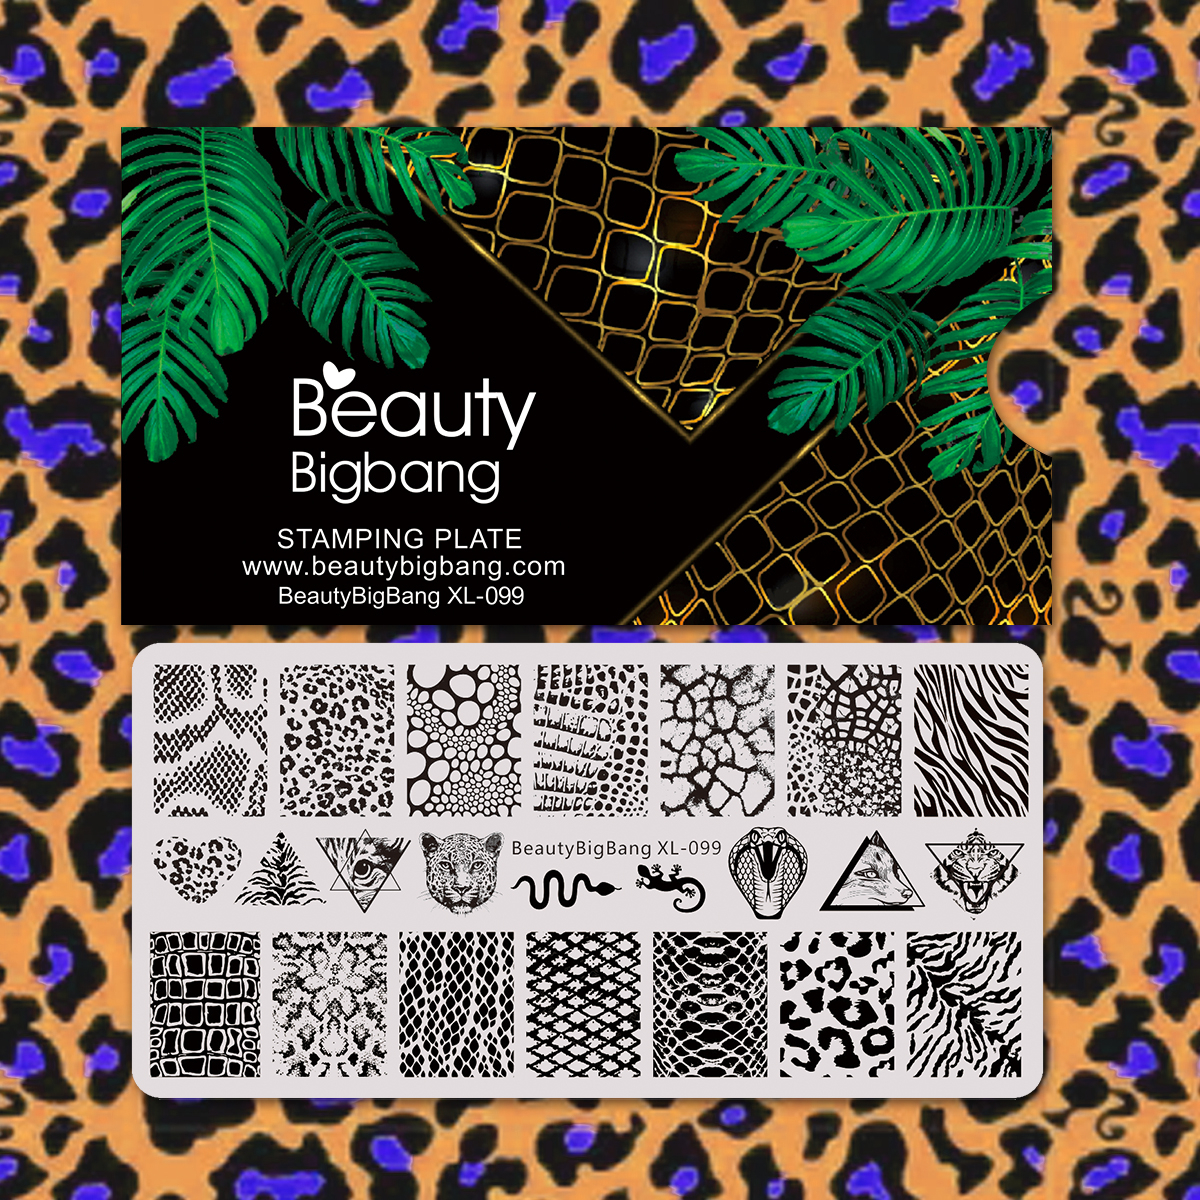 Beauty Bigbang Stamping Plates Leopard Snake Animal Skin Pattern Template Nail Art Accessories Stencil Mold XL-099